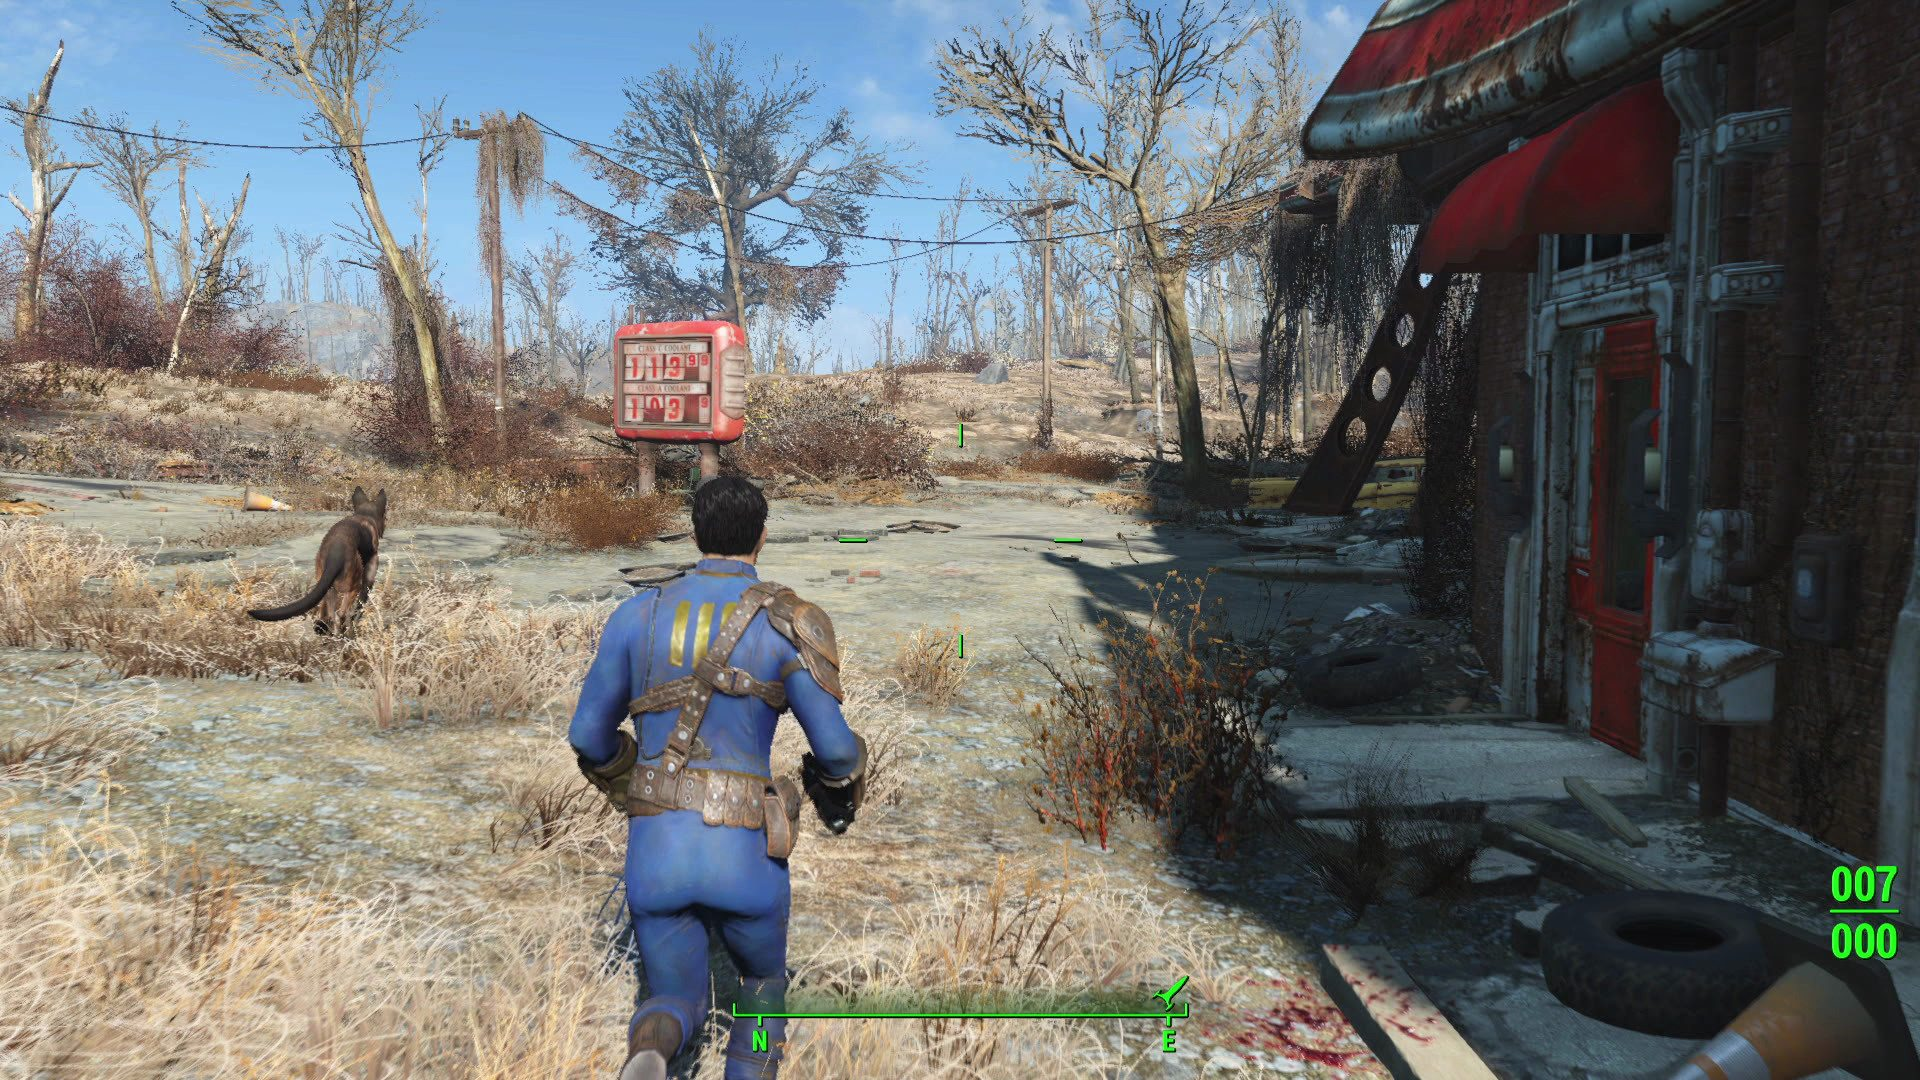 Buy Fallout 4 Ps4 Digital Code Playstation Network 200 Activation And Download Via Full Details Will Be Specified In The Email After Purchase